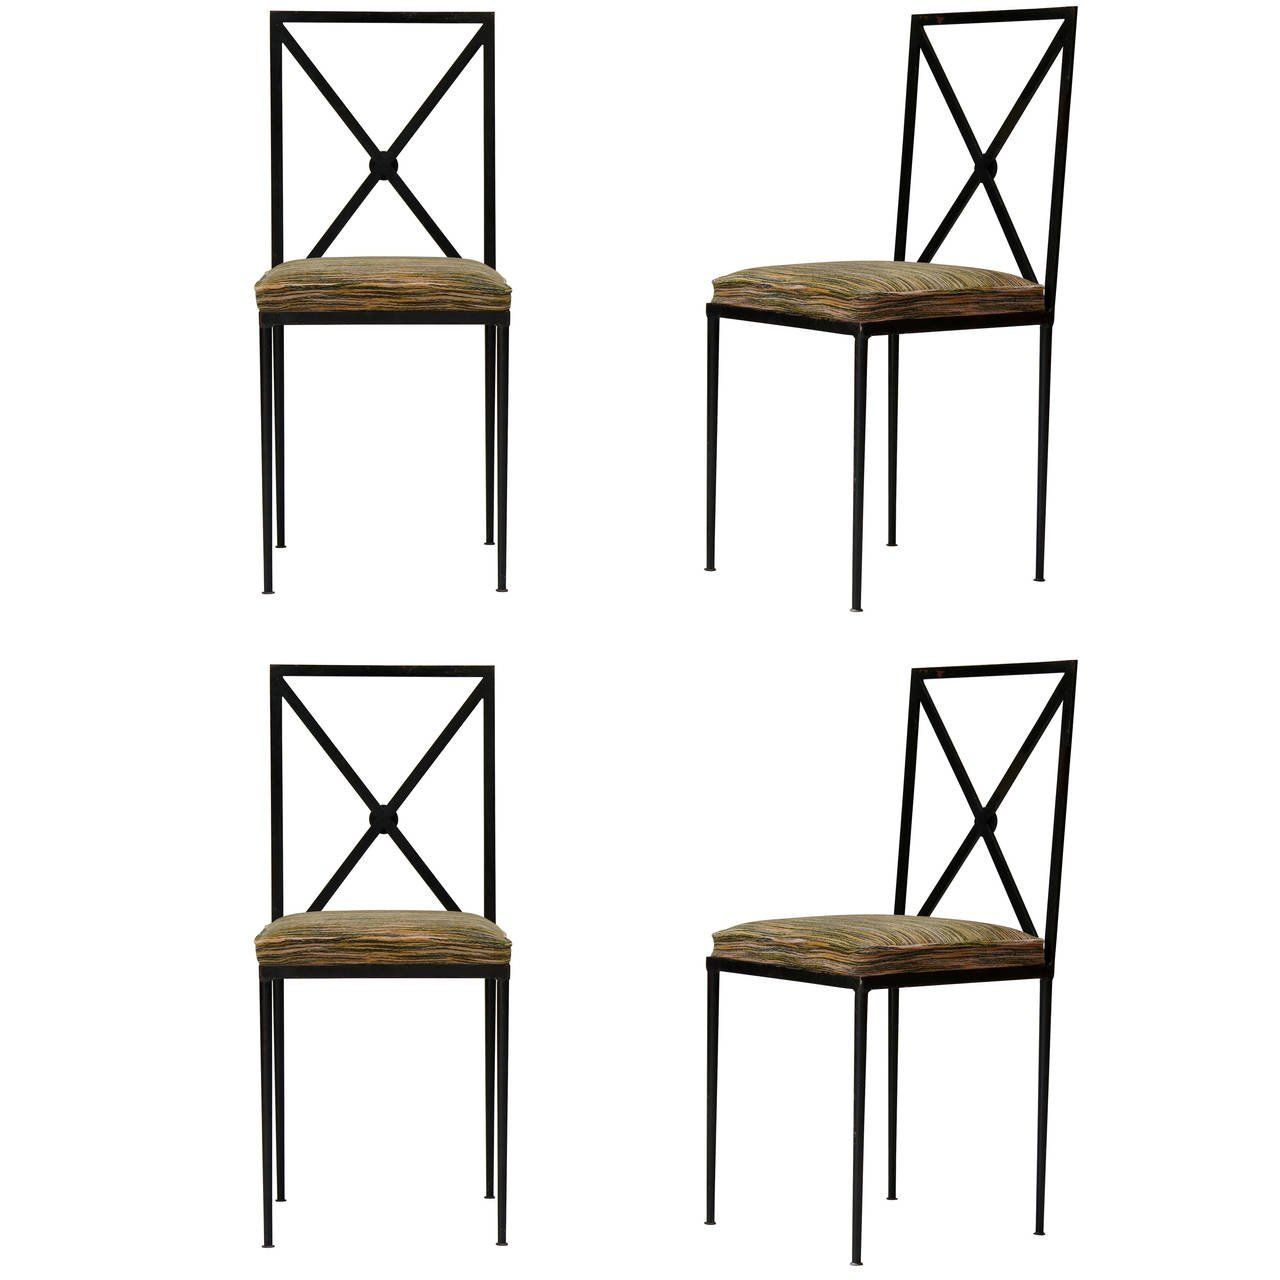 set of 4 iron chairs with velvet seats france 1950s iron set of 4 iron chairs with velvet seats france 1950s see more antique modern dining room